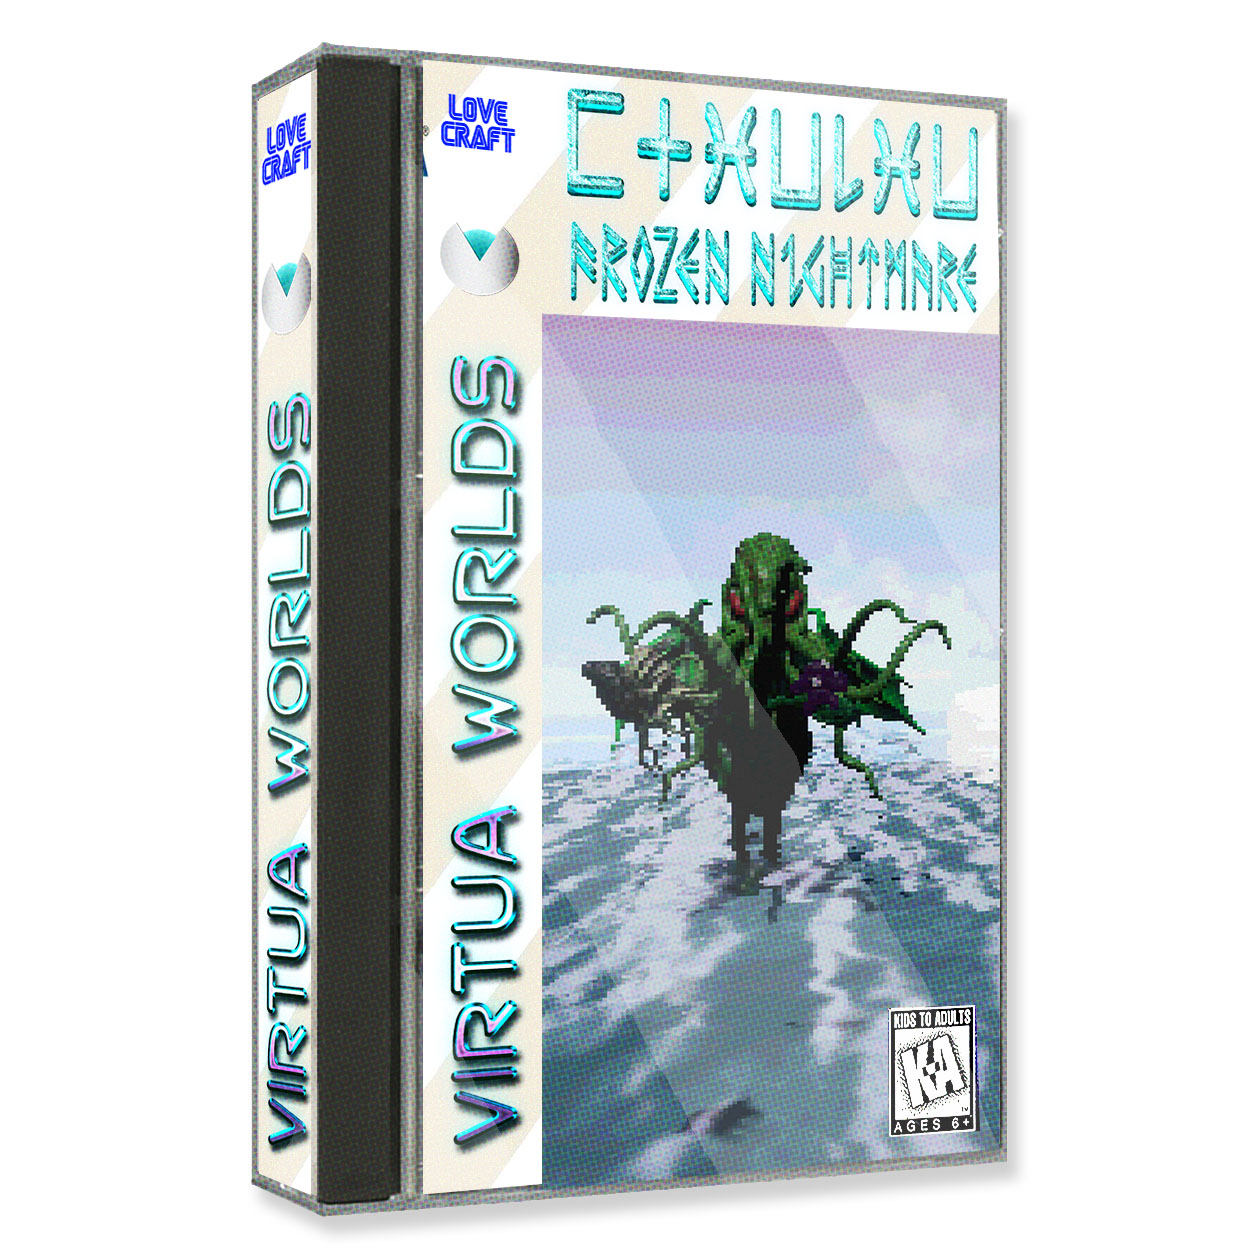 CTHULHU: Frozen Nightmare by VIRTUA WORLDS